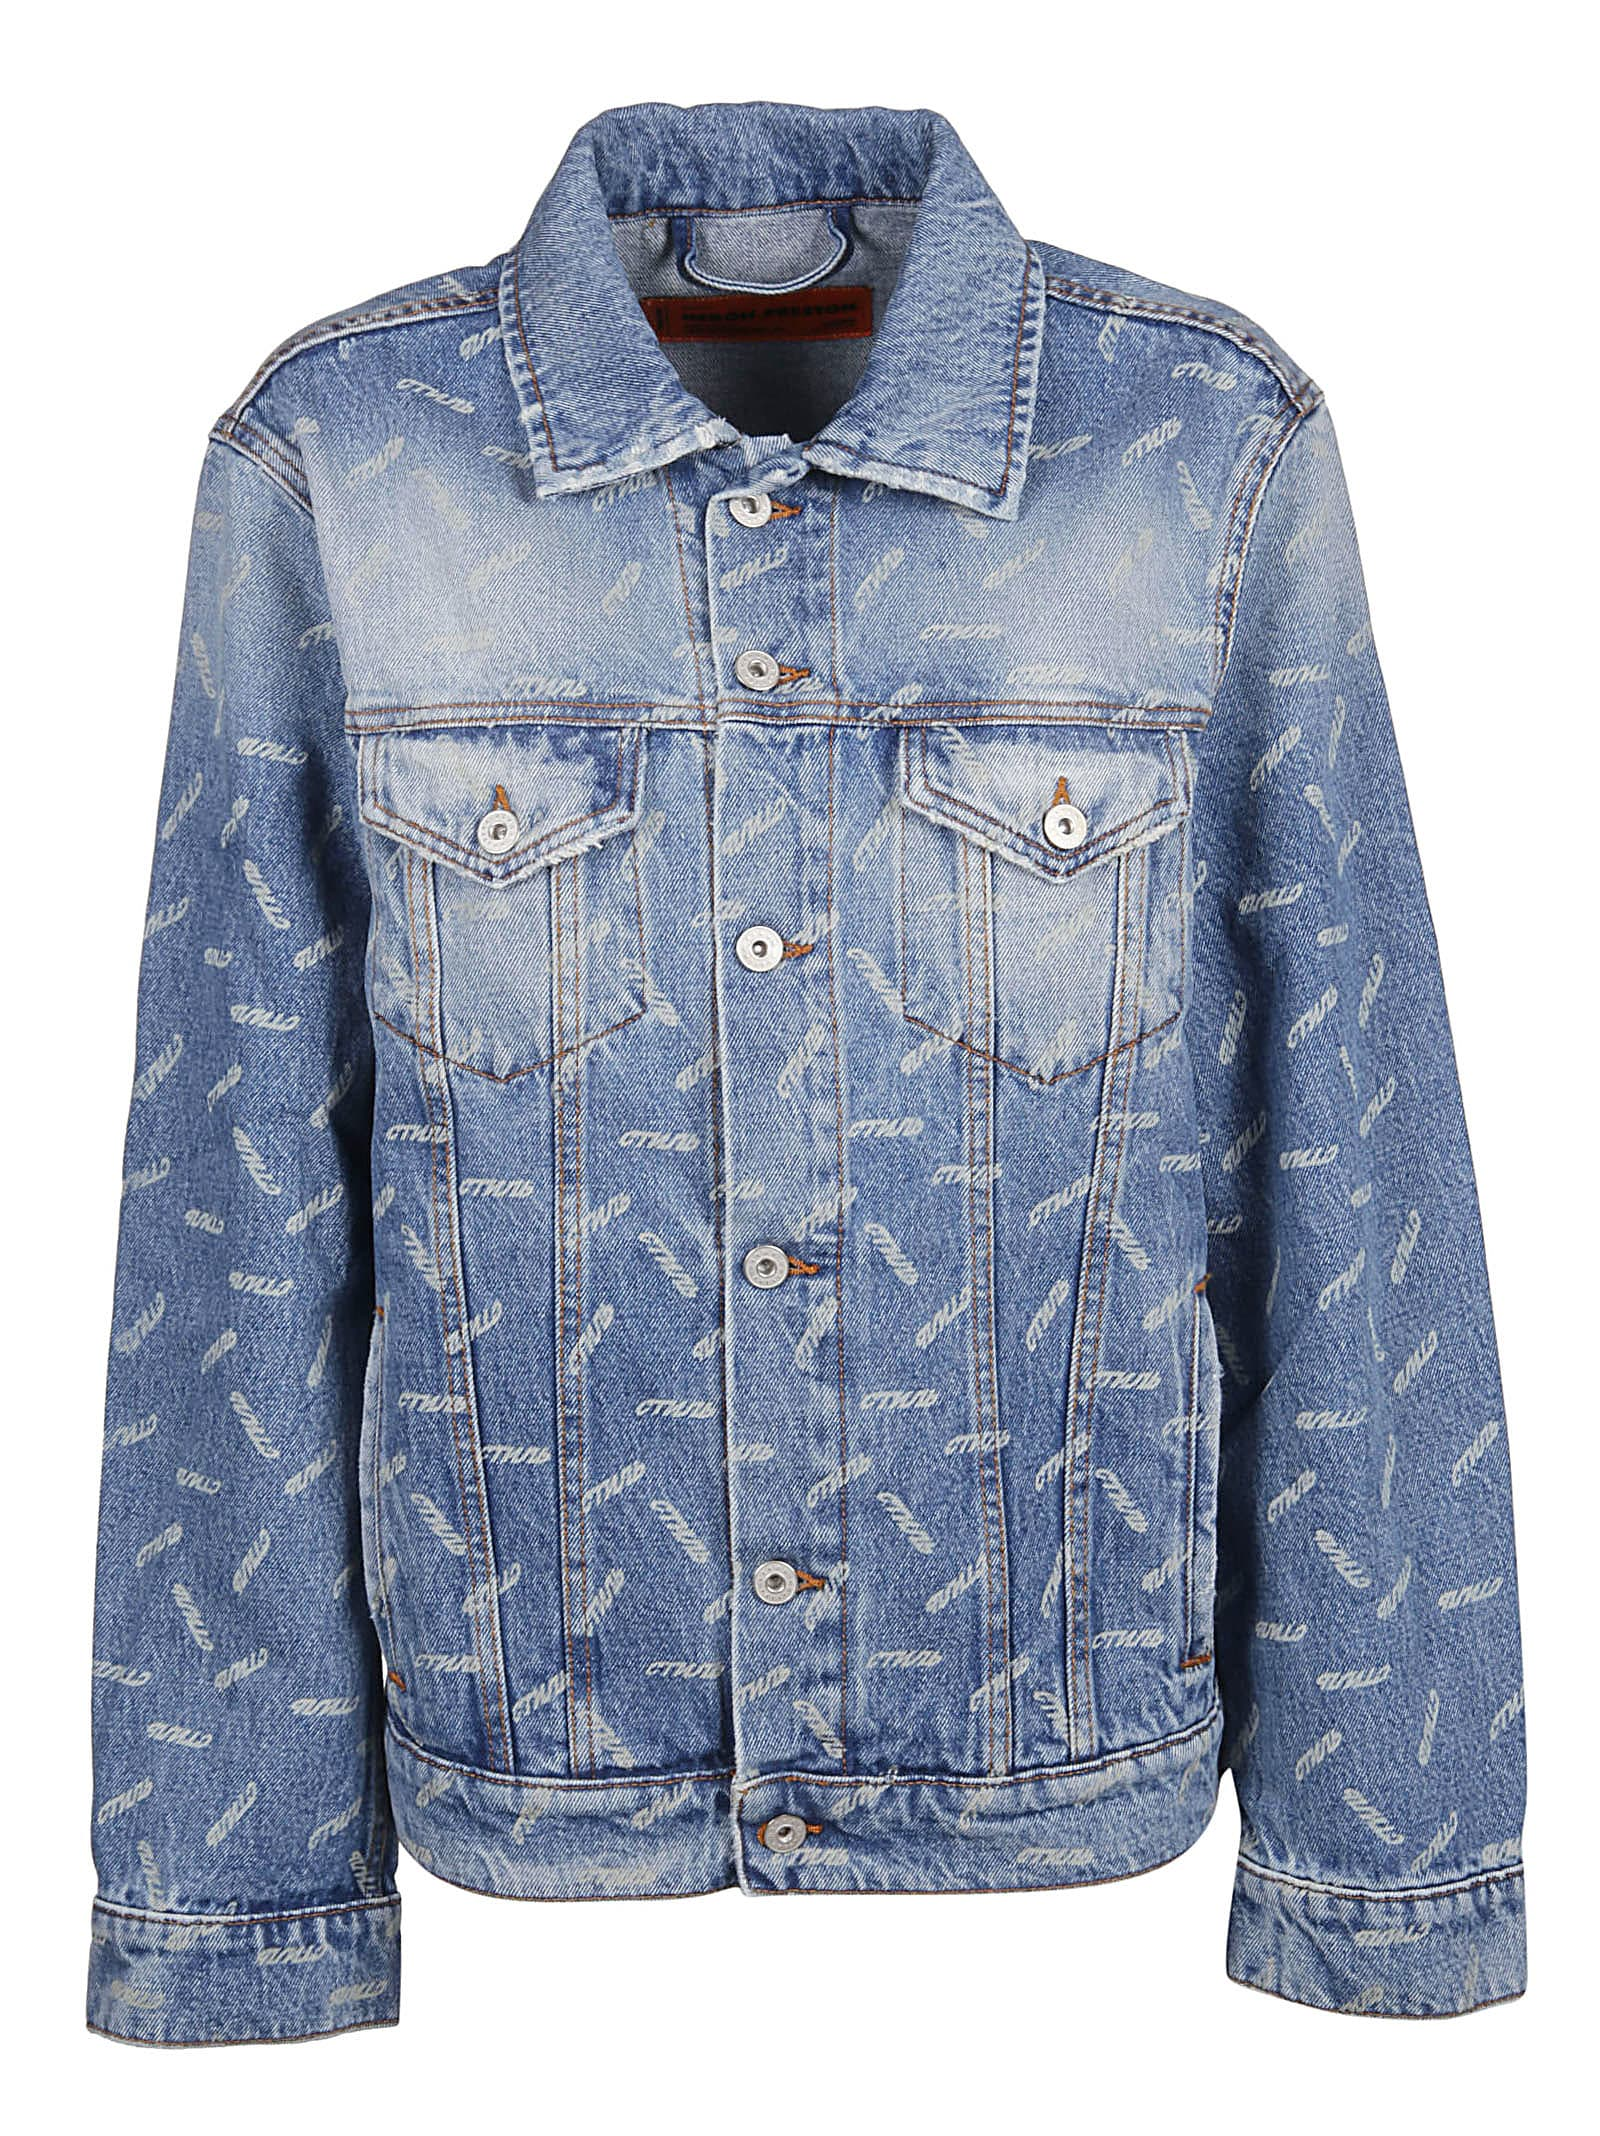 HERON PRESTON Printed Denim Jacket